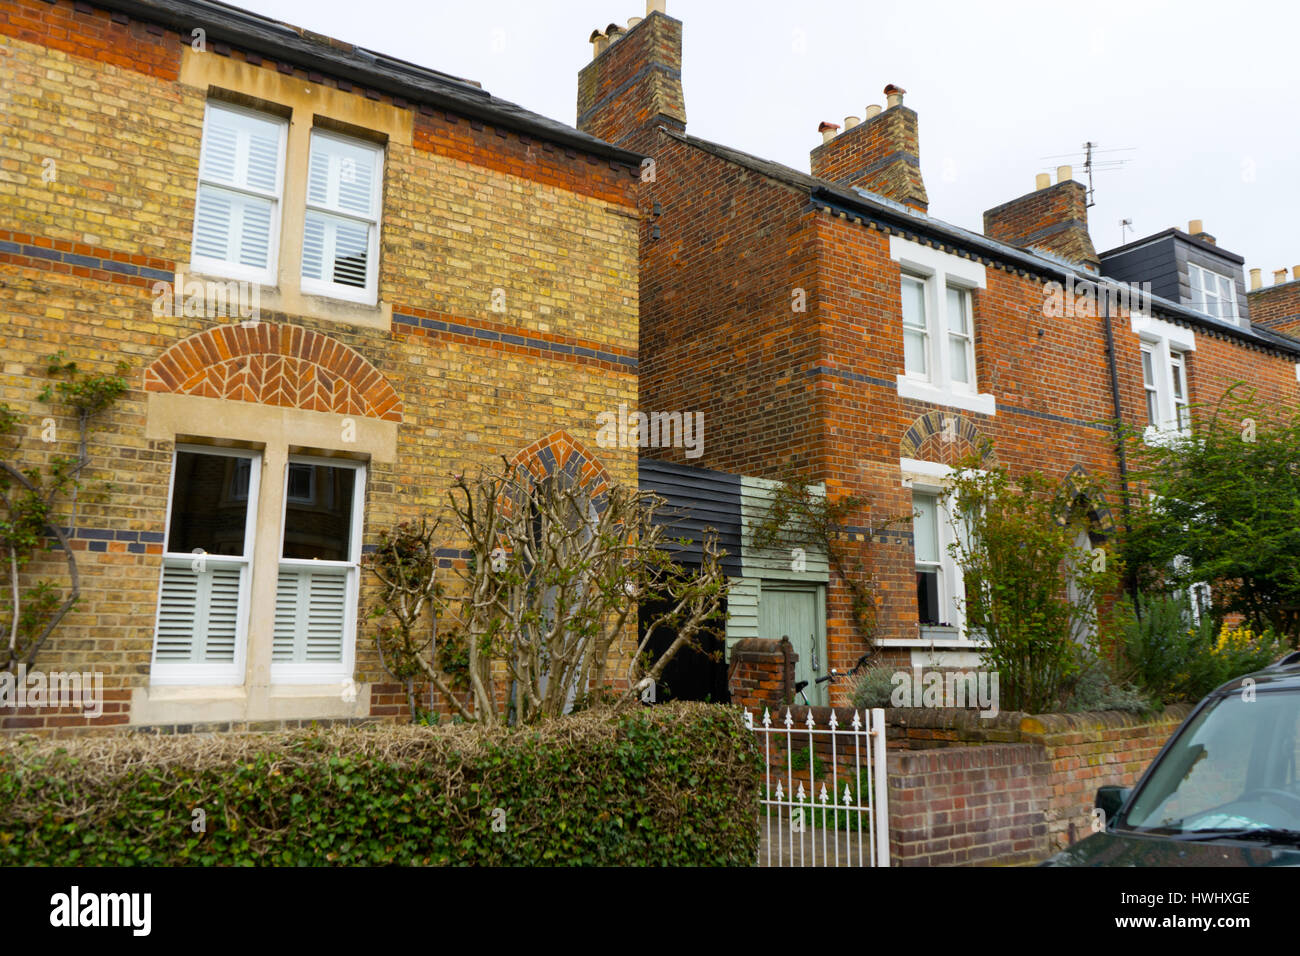 Houses and homes in the centre of Oxford, Oxfordshire, UK - Stock Image